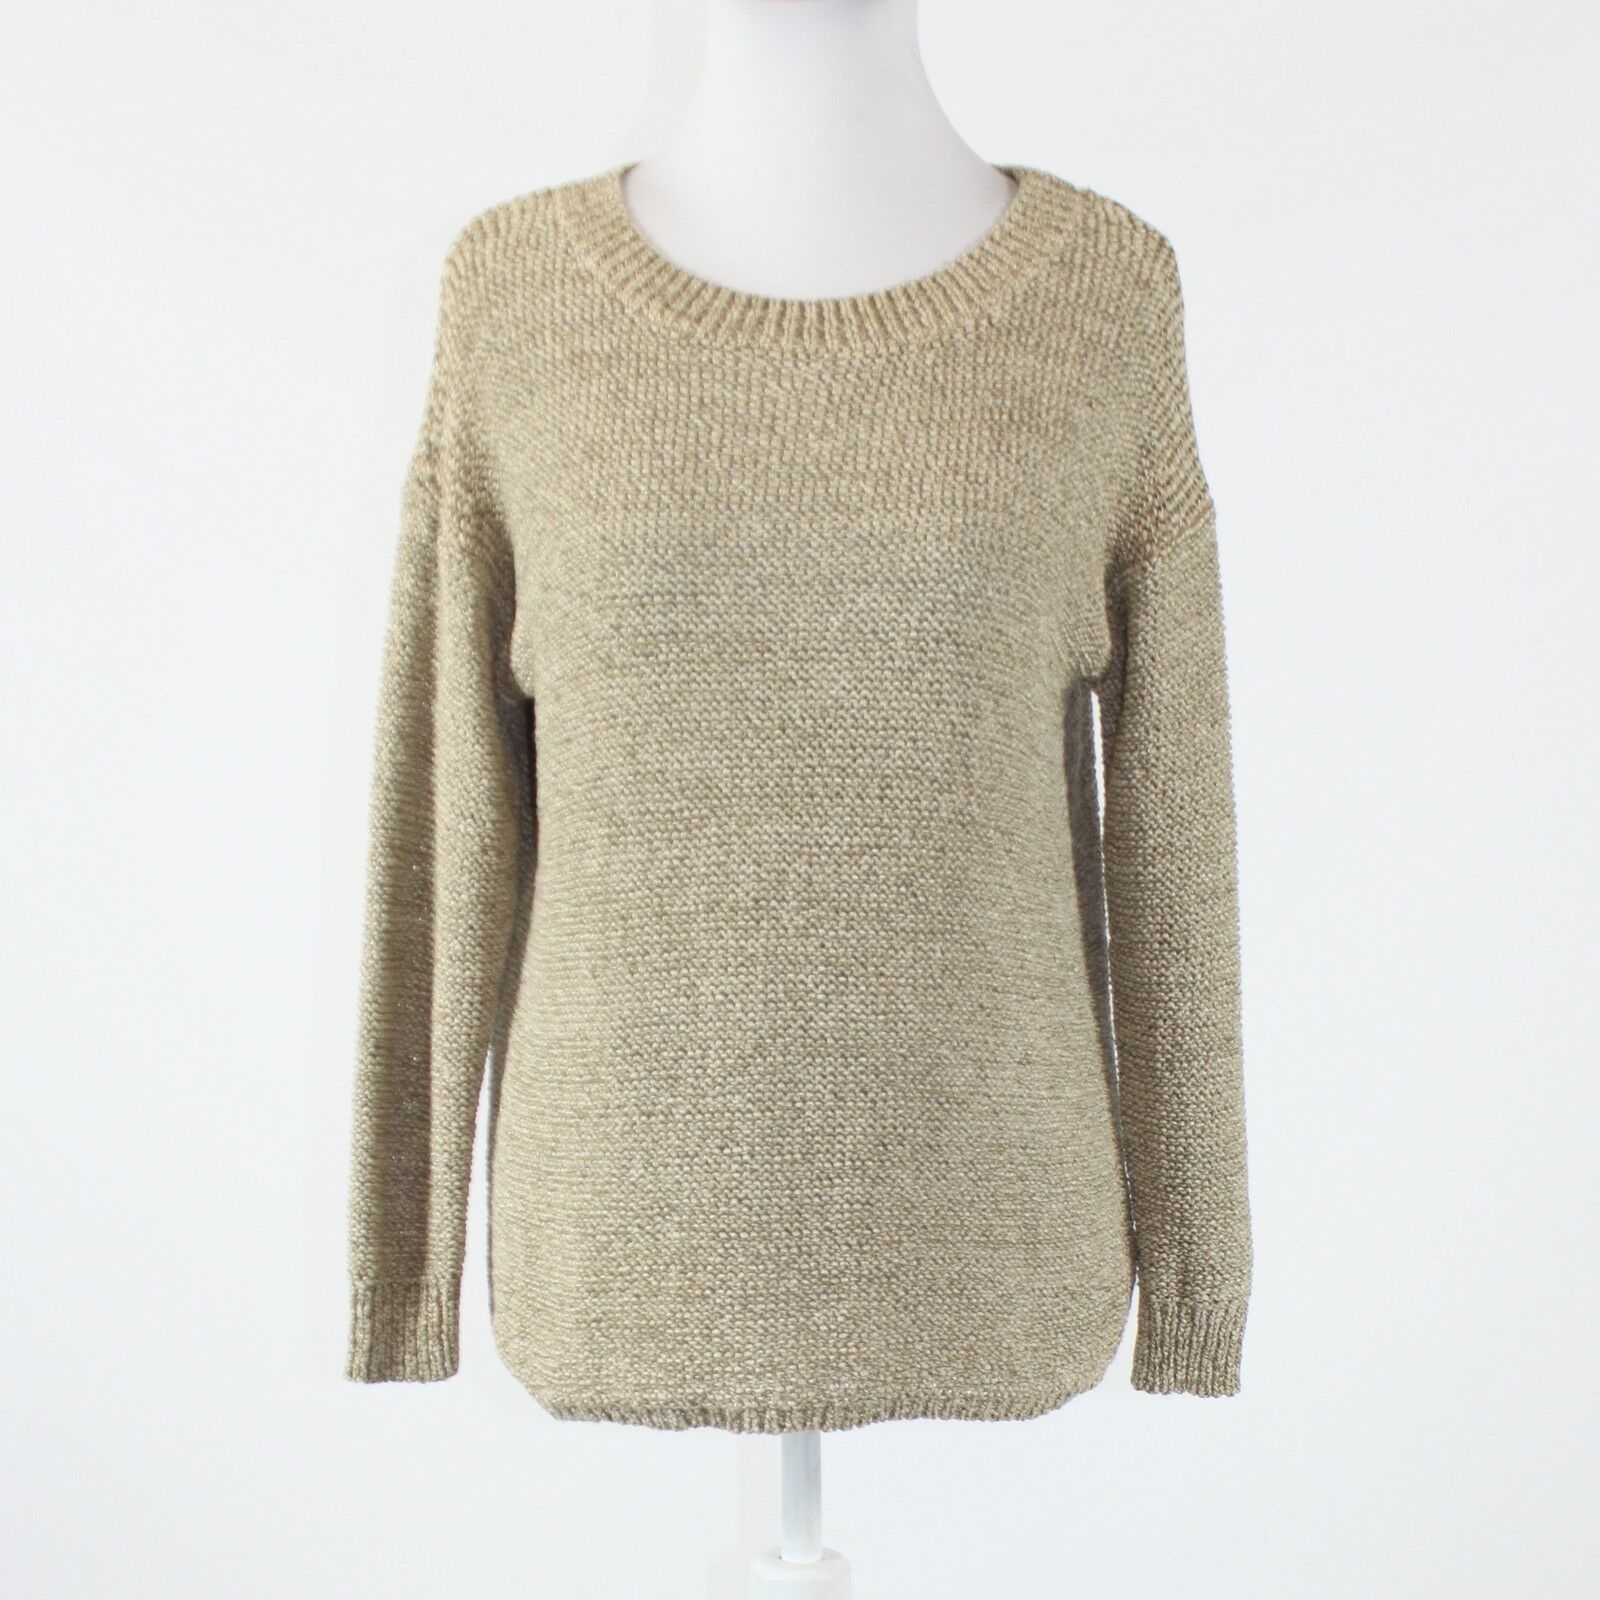 Beige cotton blend ELLEN TRACY 3/4 sleeve scoop neck ribbed trim sweater XS